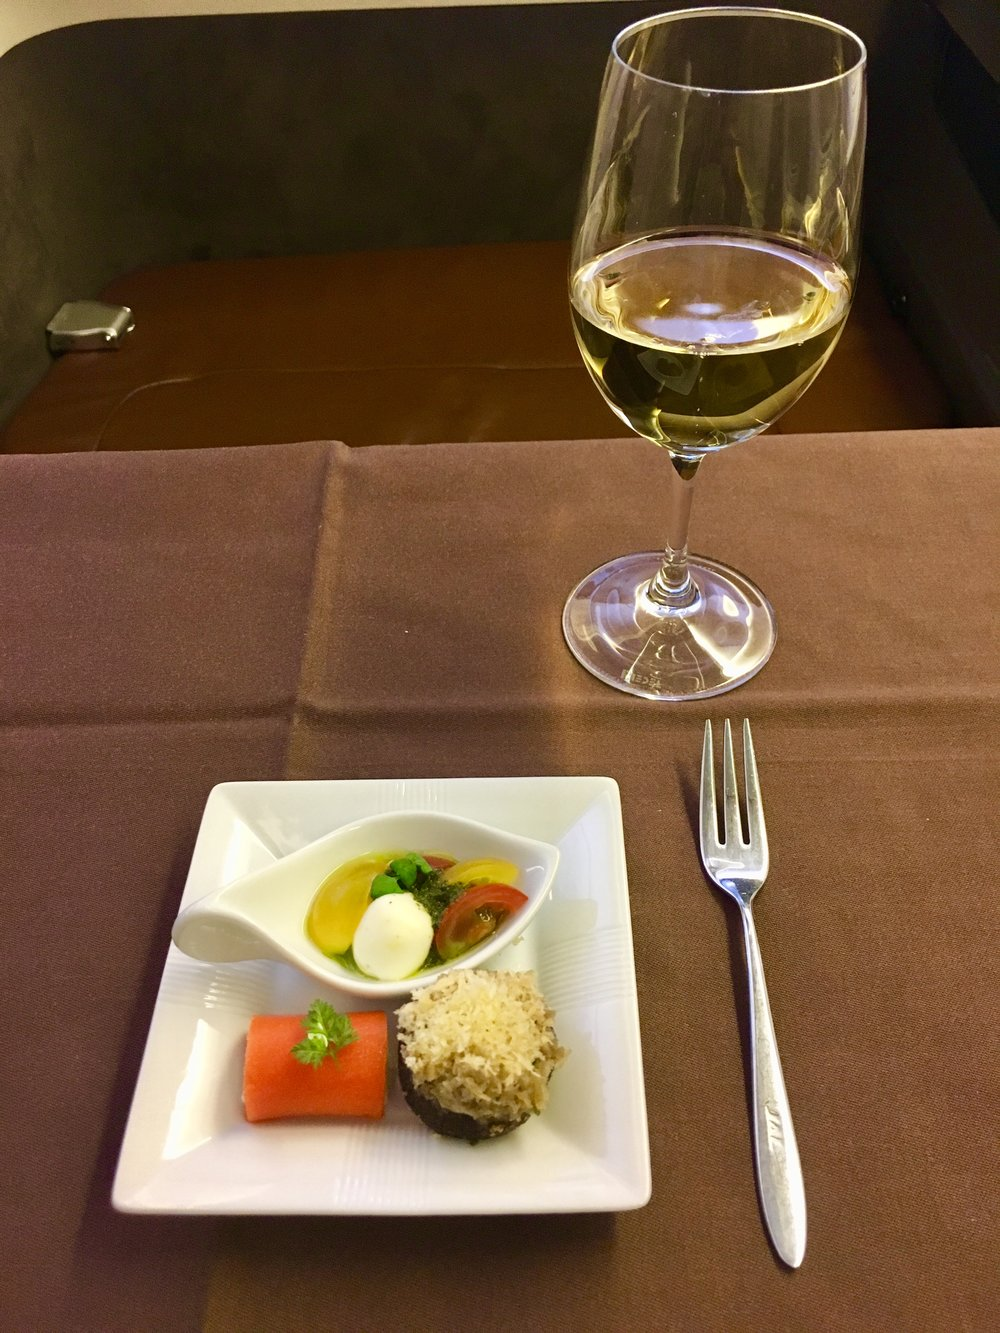 When flying in First Class, it's basically compulsory to drink champagne…especially on JAL where they offer Cristal (2009 Louis Roederer Cristal to be precise) which retails for about $250 a bottle on the ground. The amuses bouches were nice, too